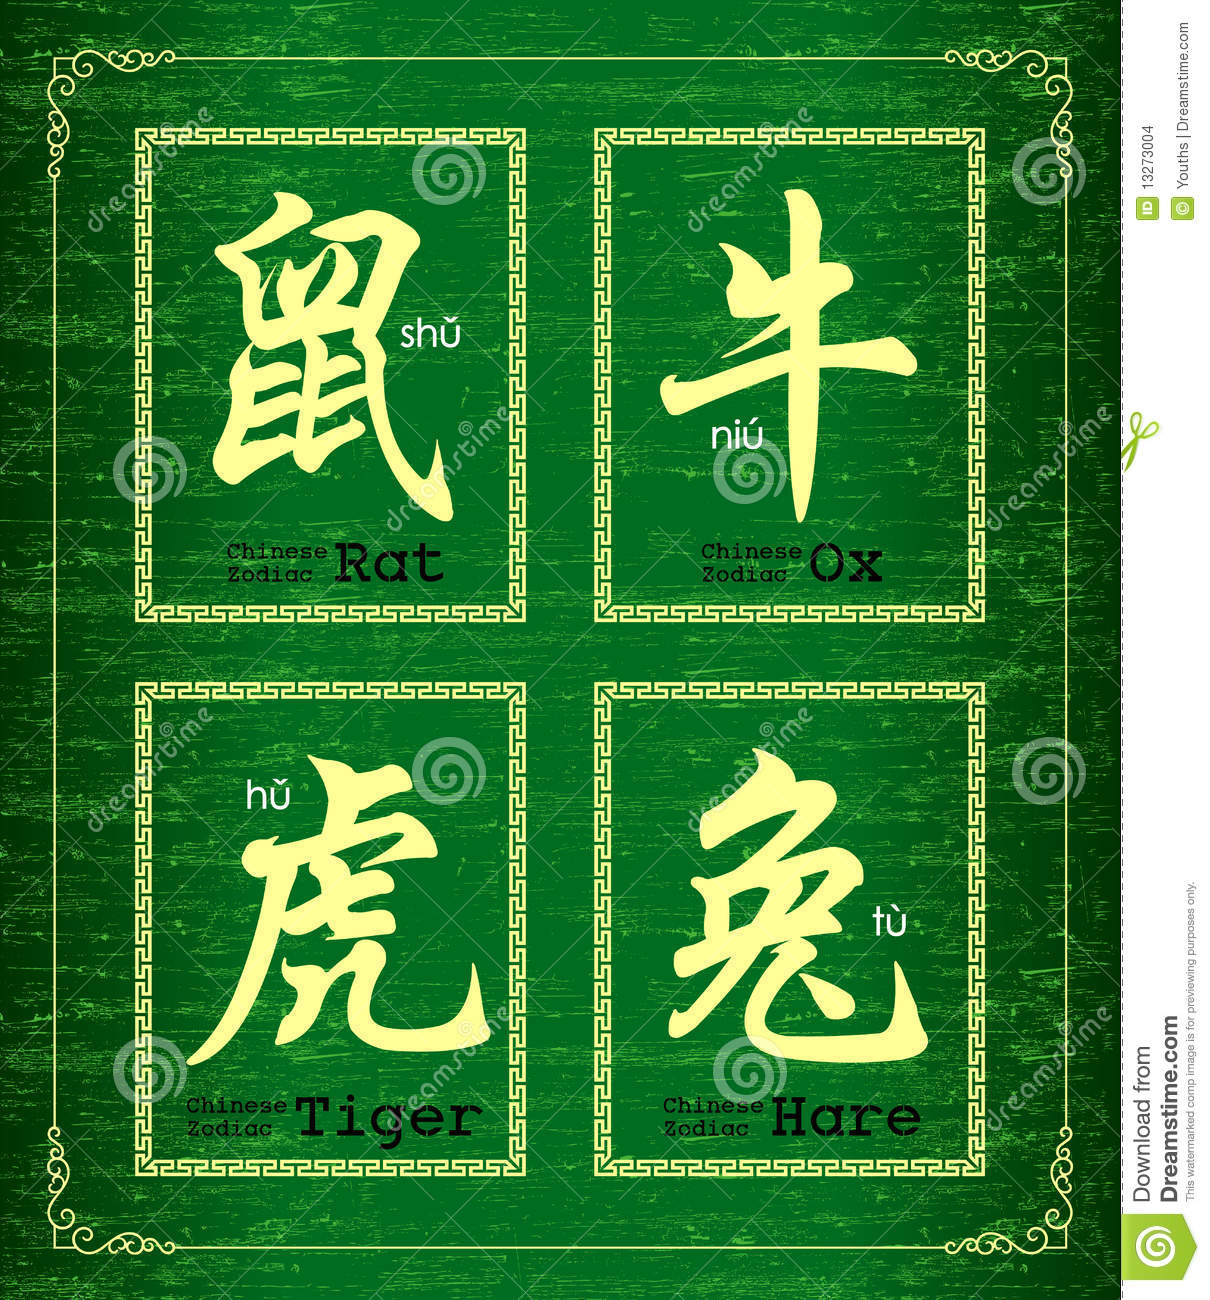 Vector Chinese character symbol about Chinese zodiac